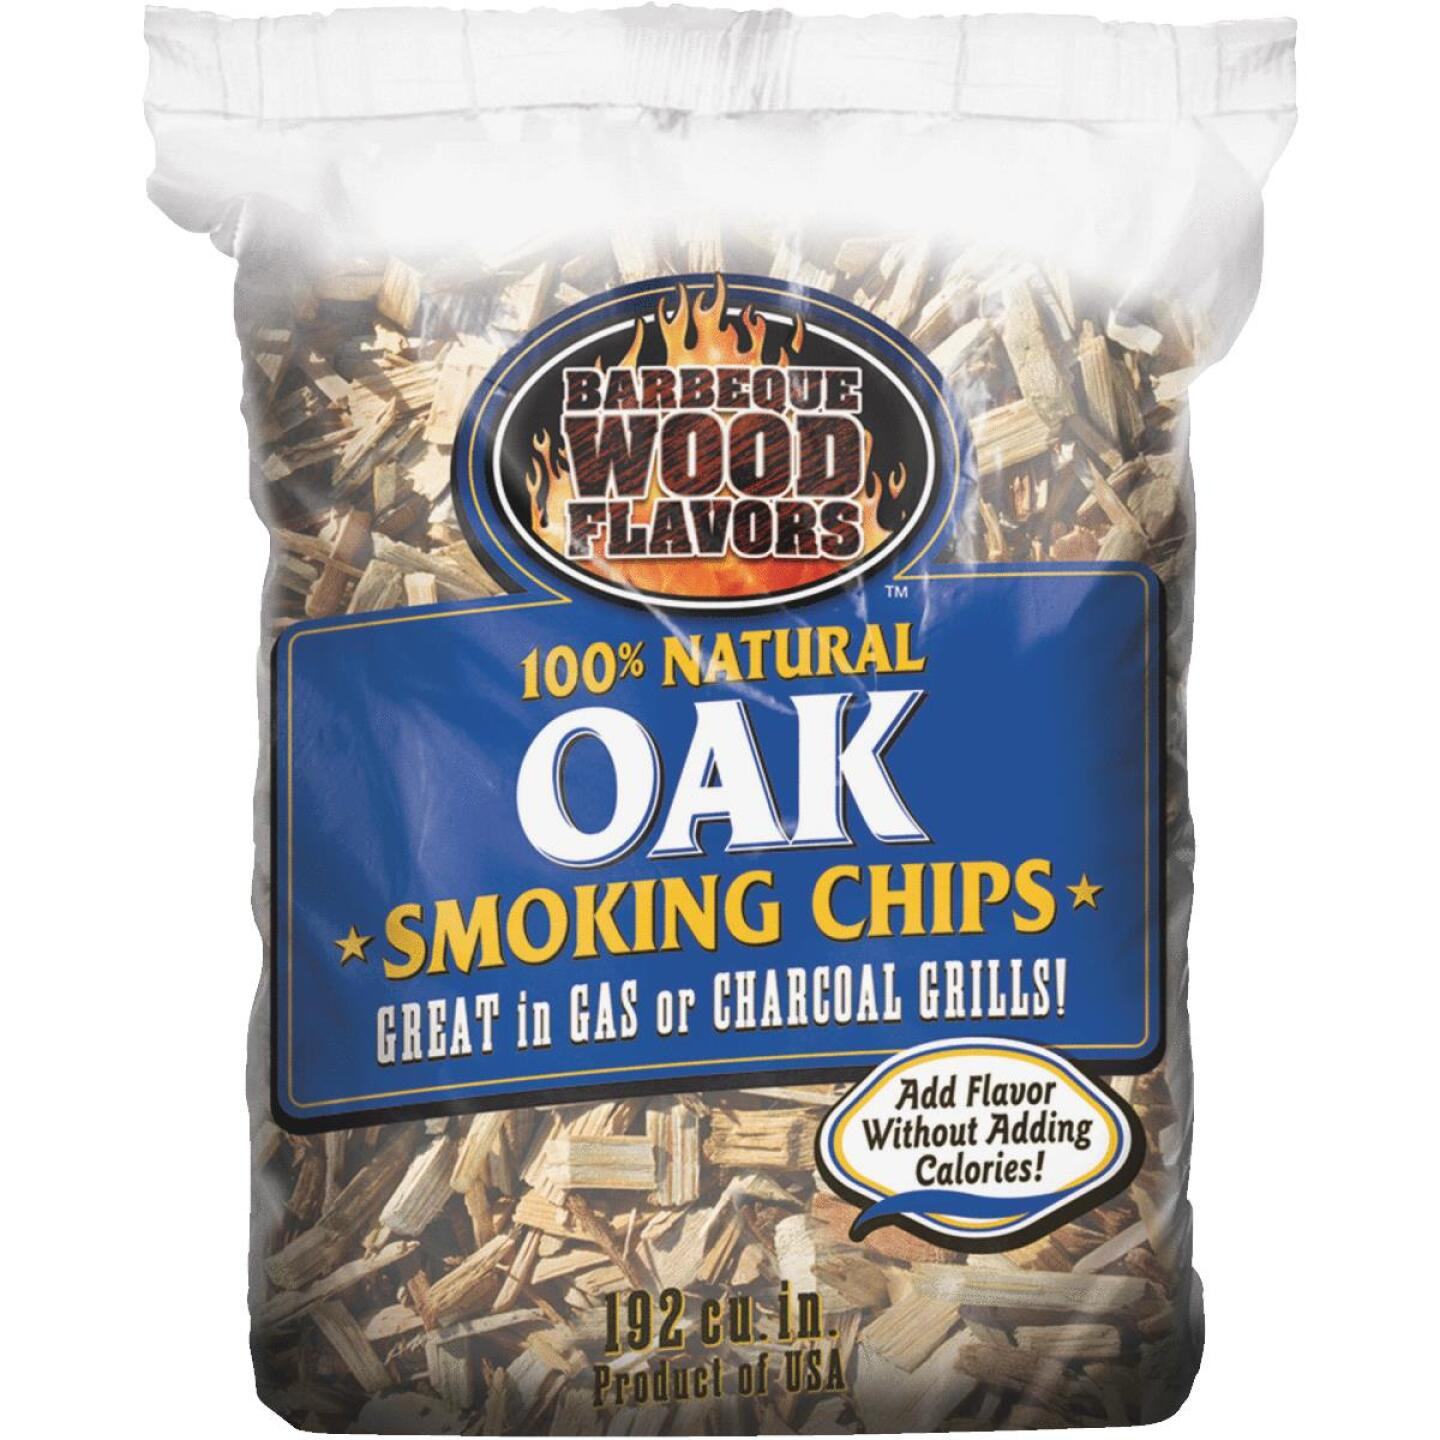 Barbeque Wood Flavors 2.25 Lb. Oak Smoking Chips Image 1